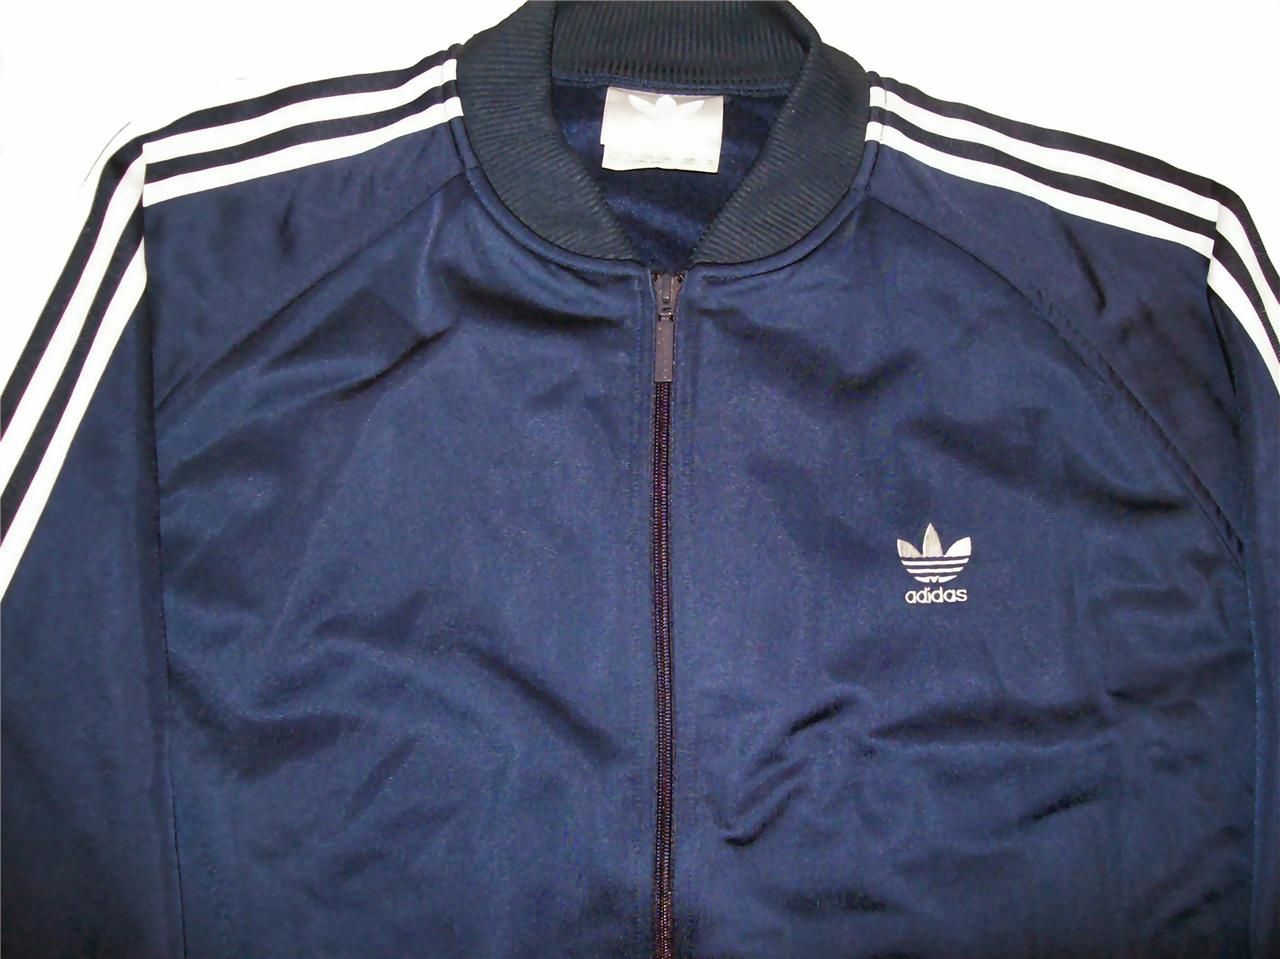 adidas superstar classic navy track jacket sz xl ebay. Black Bedroom Furniture Sets. Home Design Ideas